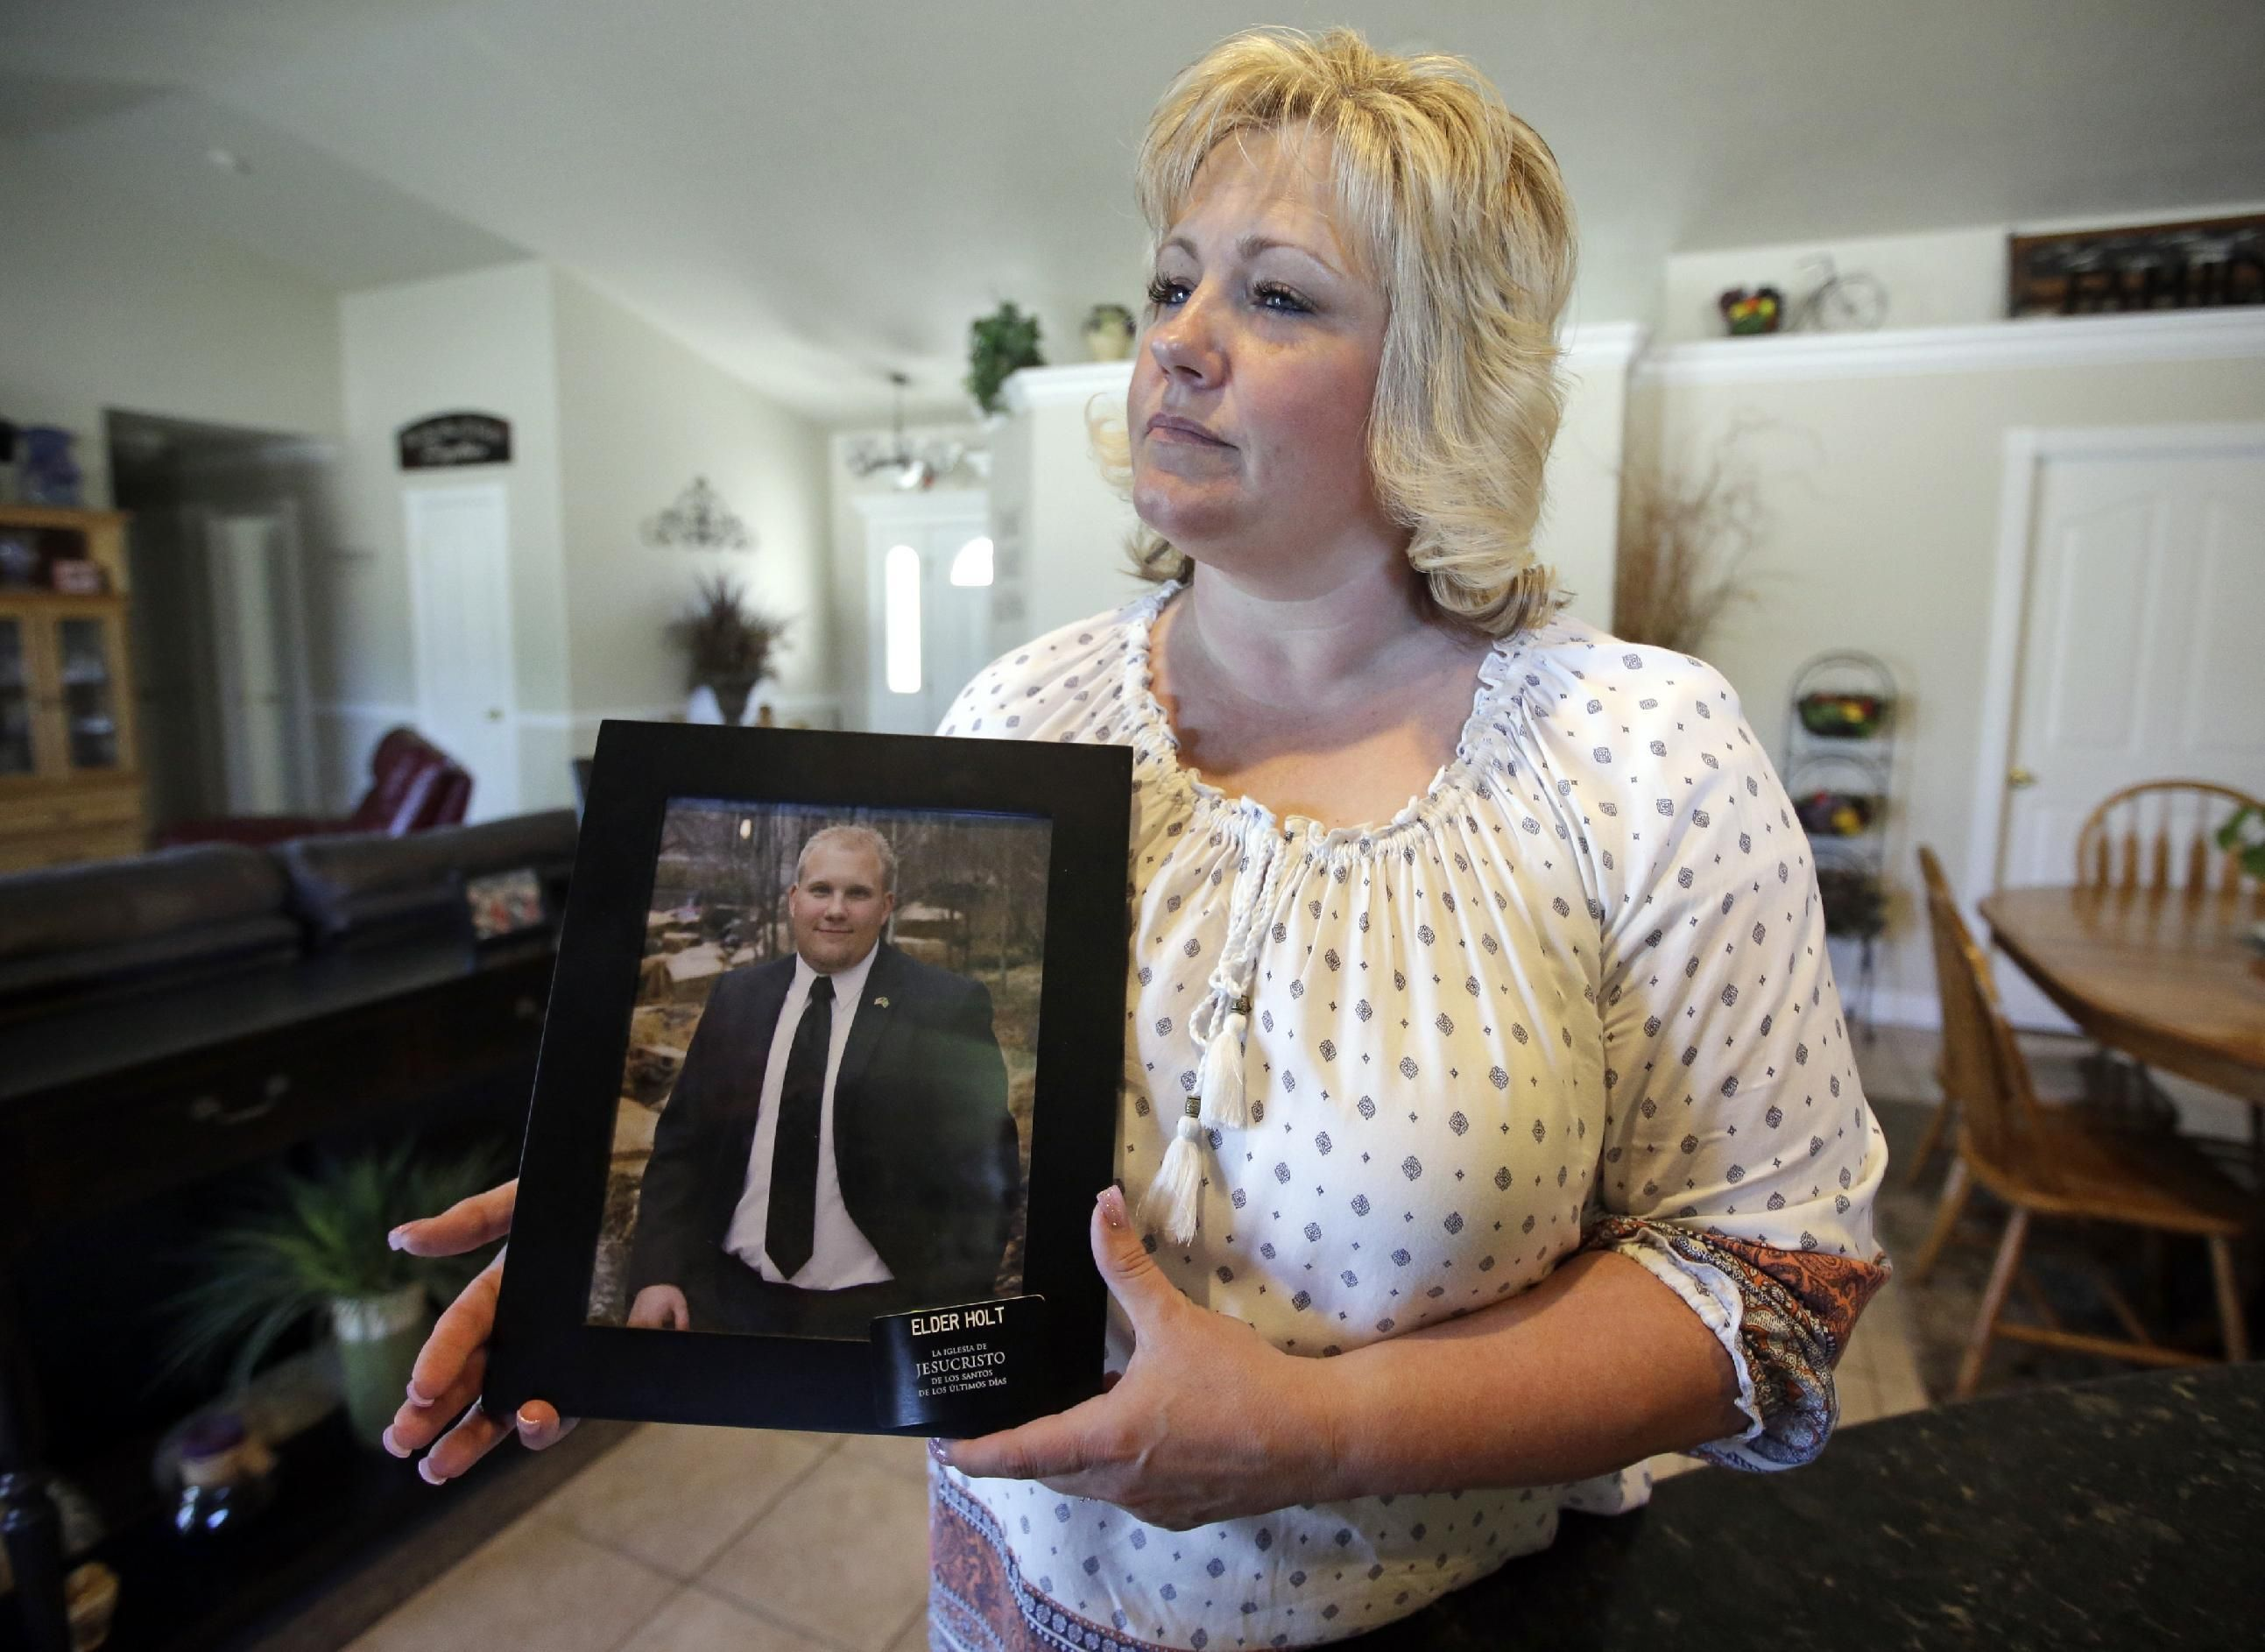 In this July 13, 2016 file photo, Laurie Holt holds a photograph of her son Josh Holt at her home, in Riverton, Utah. U.S. congresswoman Mia Love said Wednesday, Aug. 31 she will call on the State Department to do more to free Josh Holt, a Utah man who's been jailed in Venezuela for two months on weapons charges. | AP File Photo/Rick Bowmer, St. George News